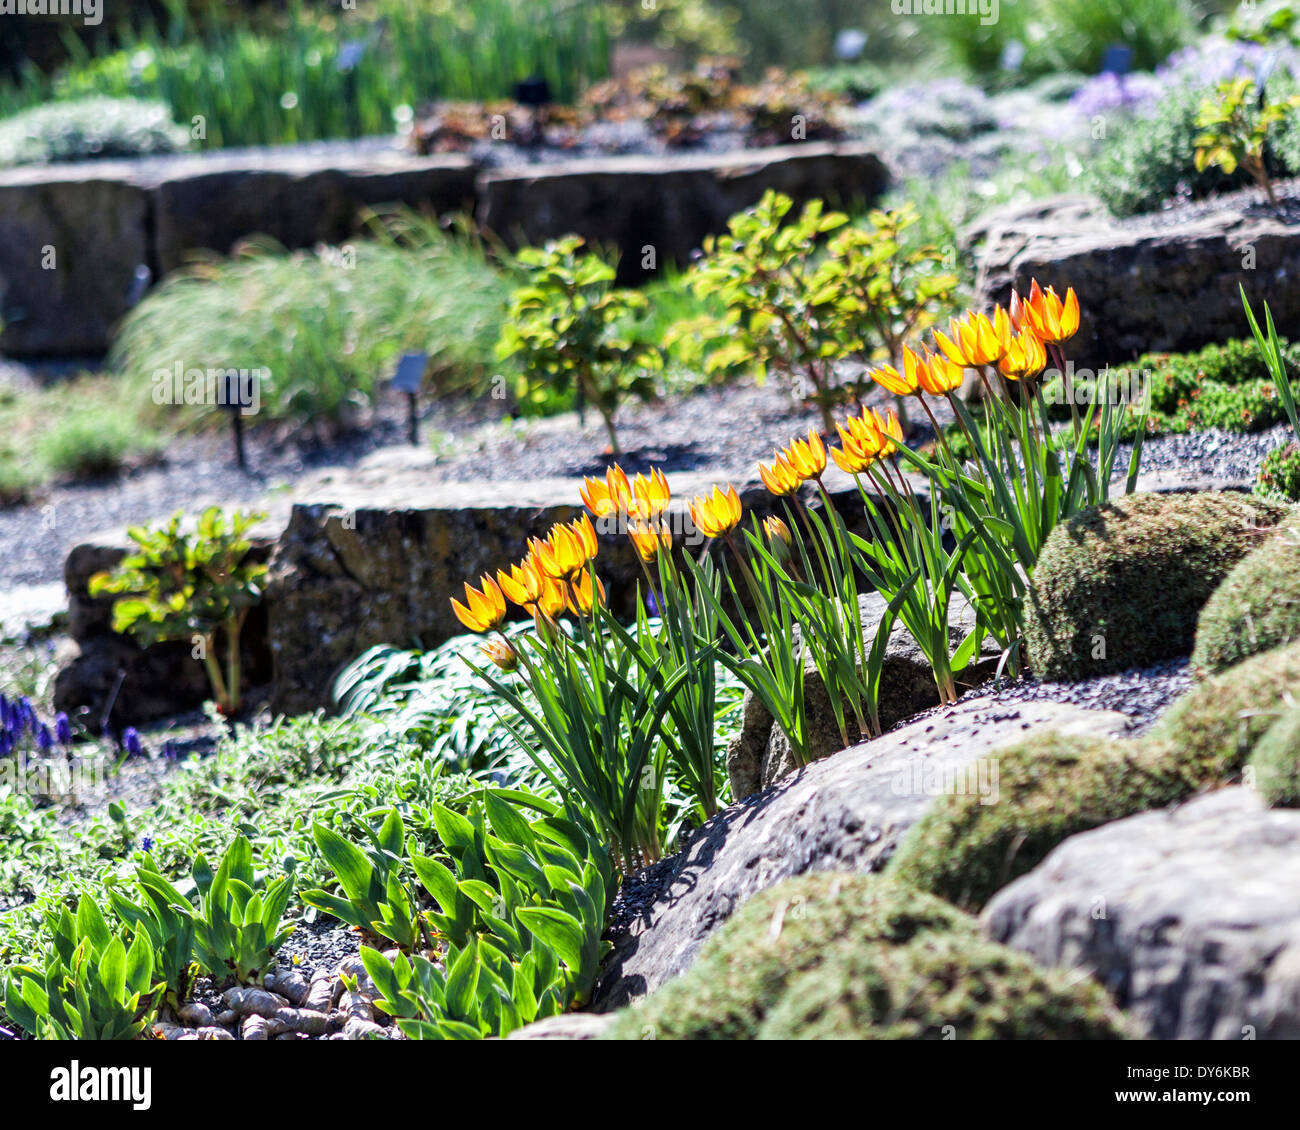 Yellow Tulips And New Growth In The Alpine Garden And Rockery At Kew Gardens  In Spring. London, UK